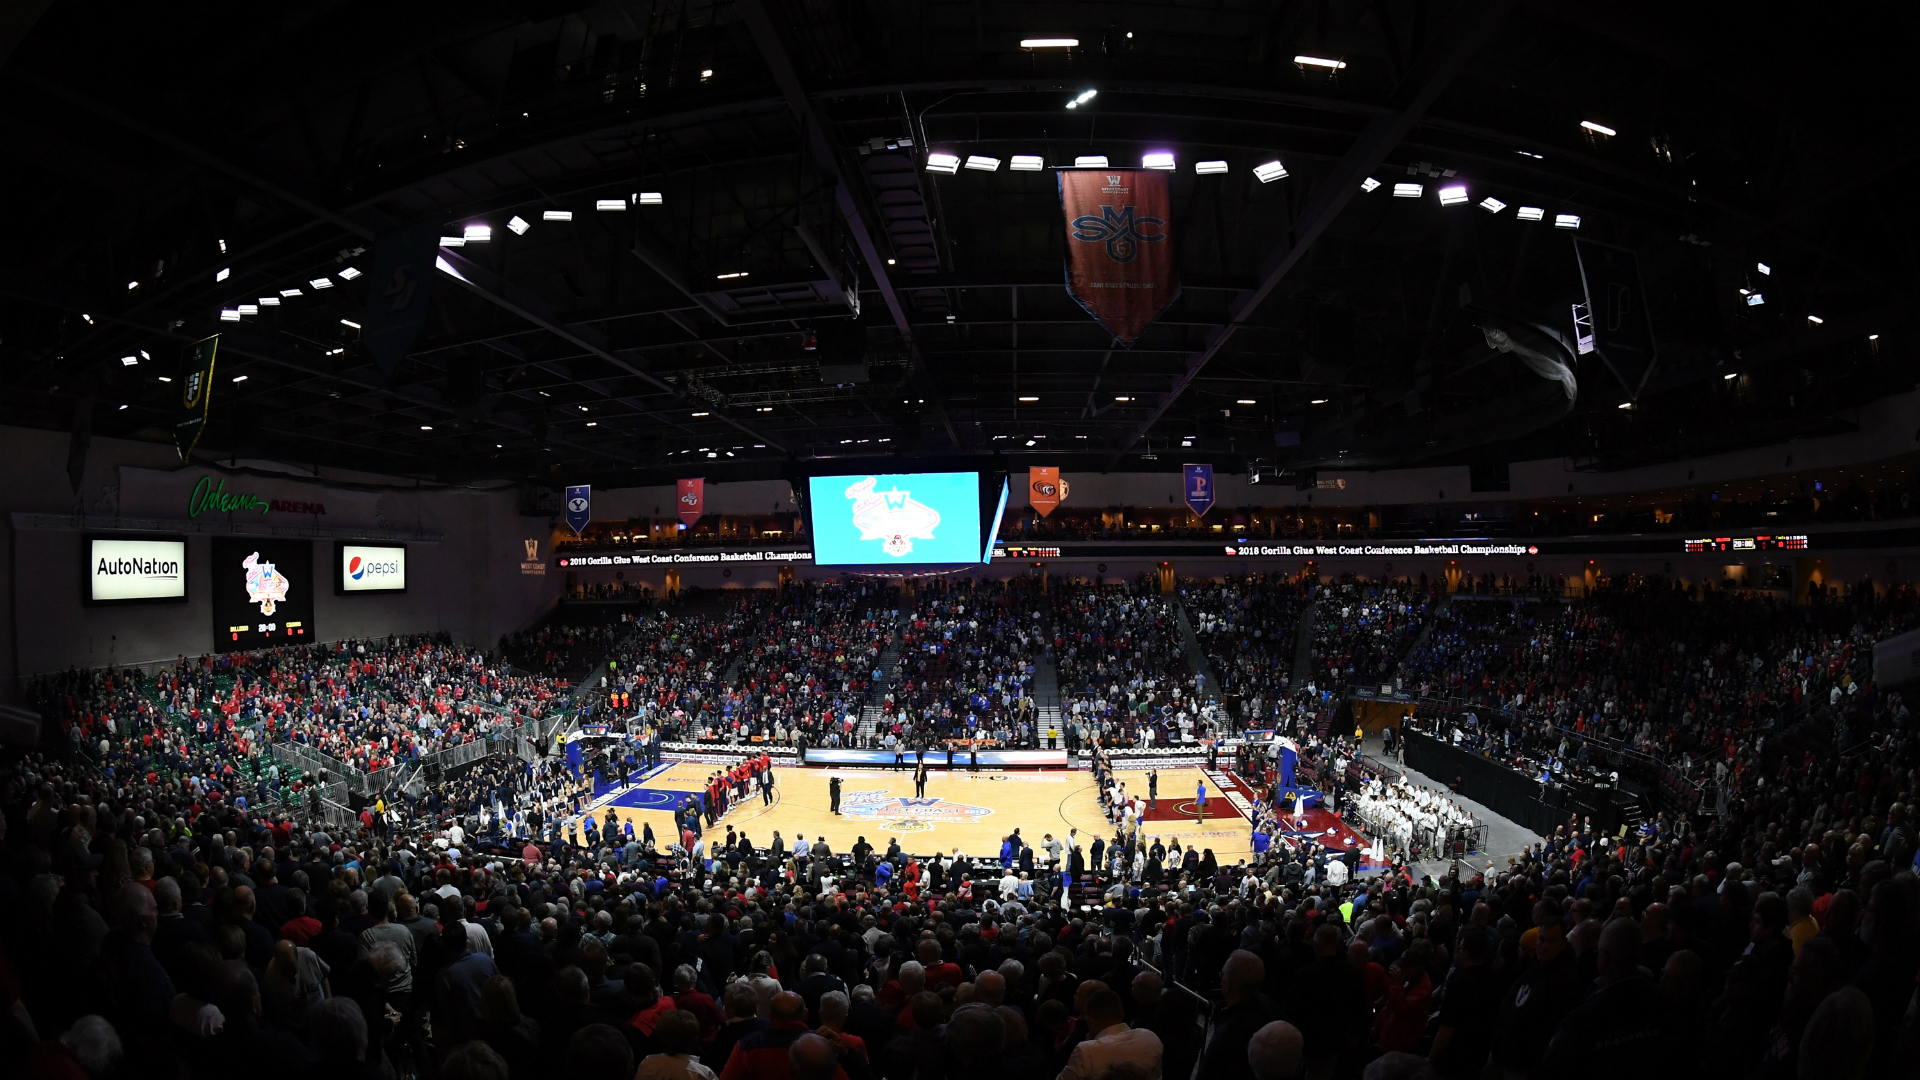 Saint Mary's knocks off No. 1 Gonzaga 60-47 for WCC title